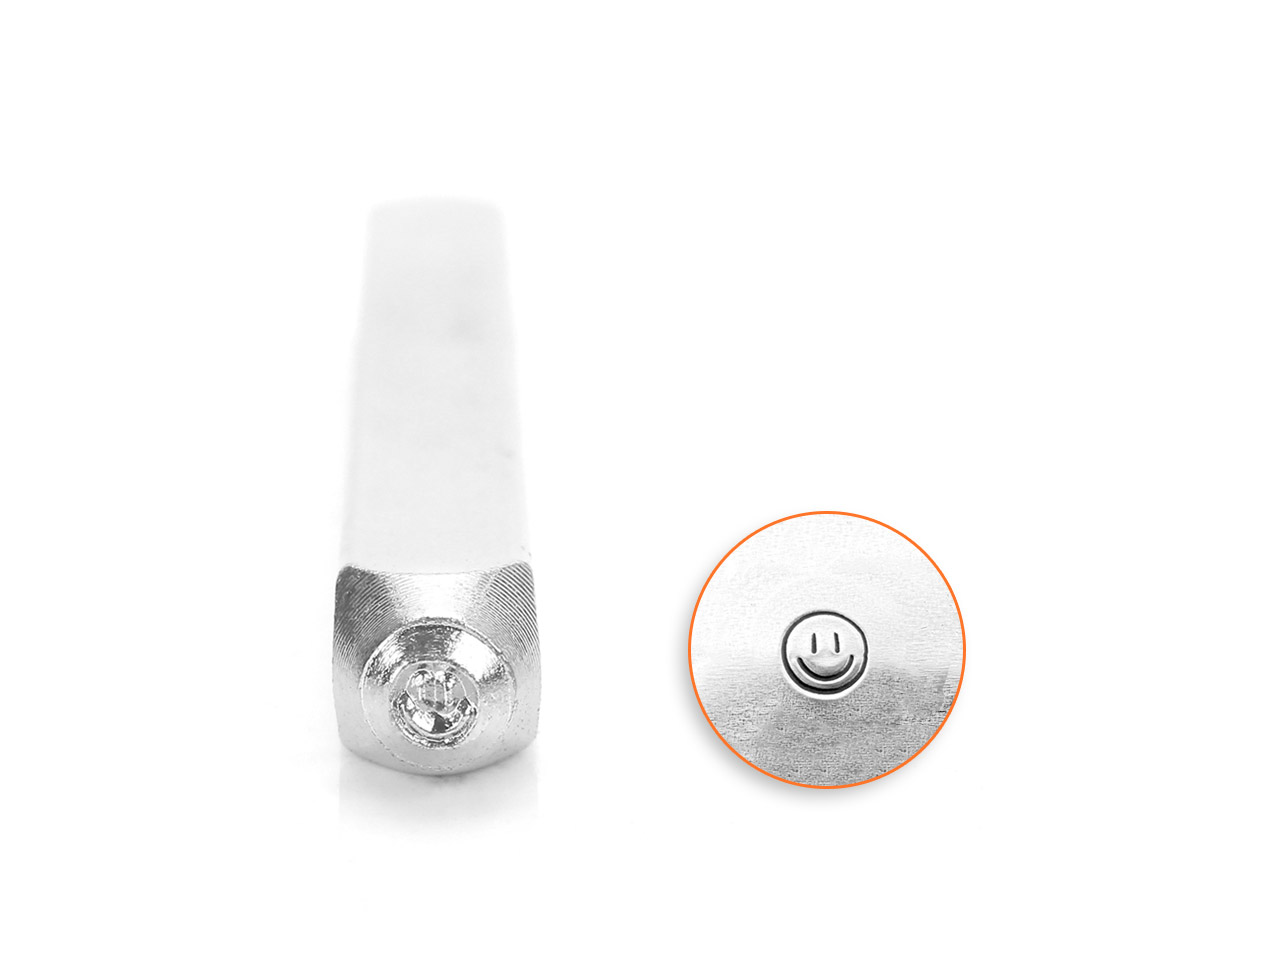 Impressart Smiley Face Design Stamp 3mm